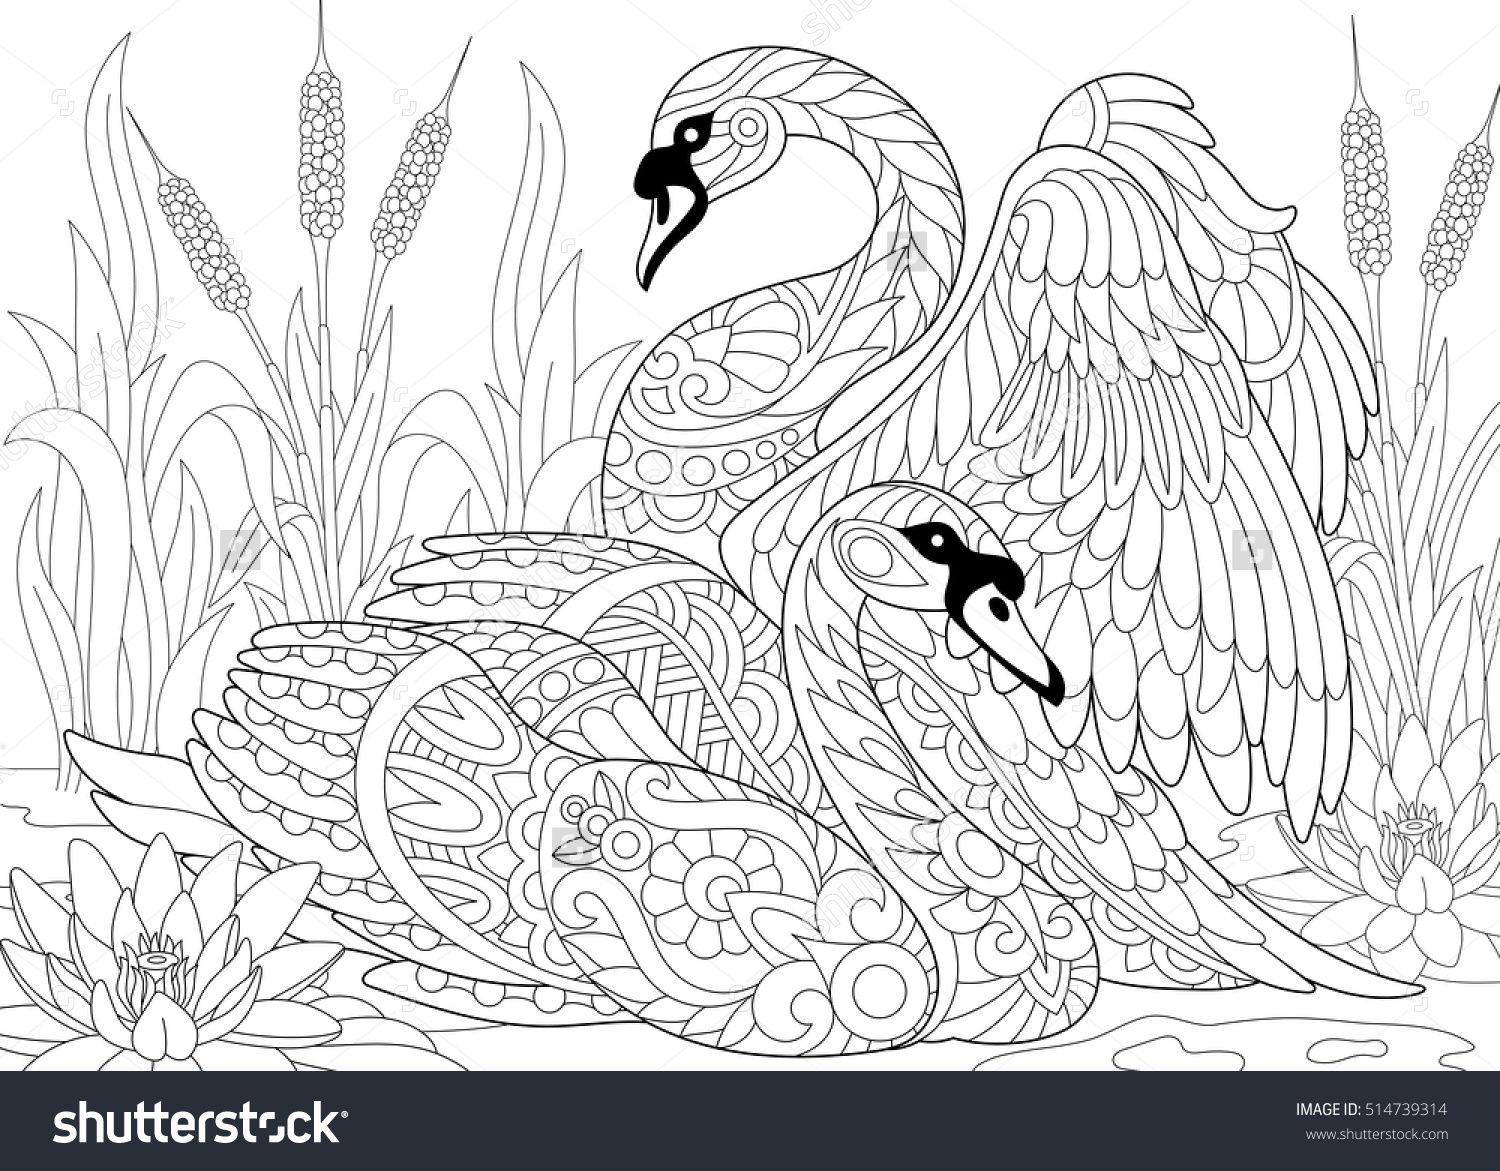 Water lily flower coloring pages - Stylized Couple Of Two Swans Among Lotus Flowers Water Lilies And Pond Plants